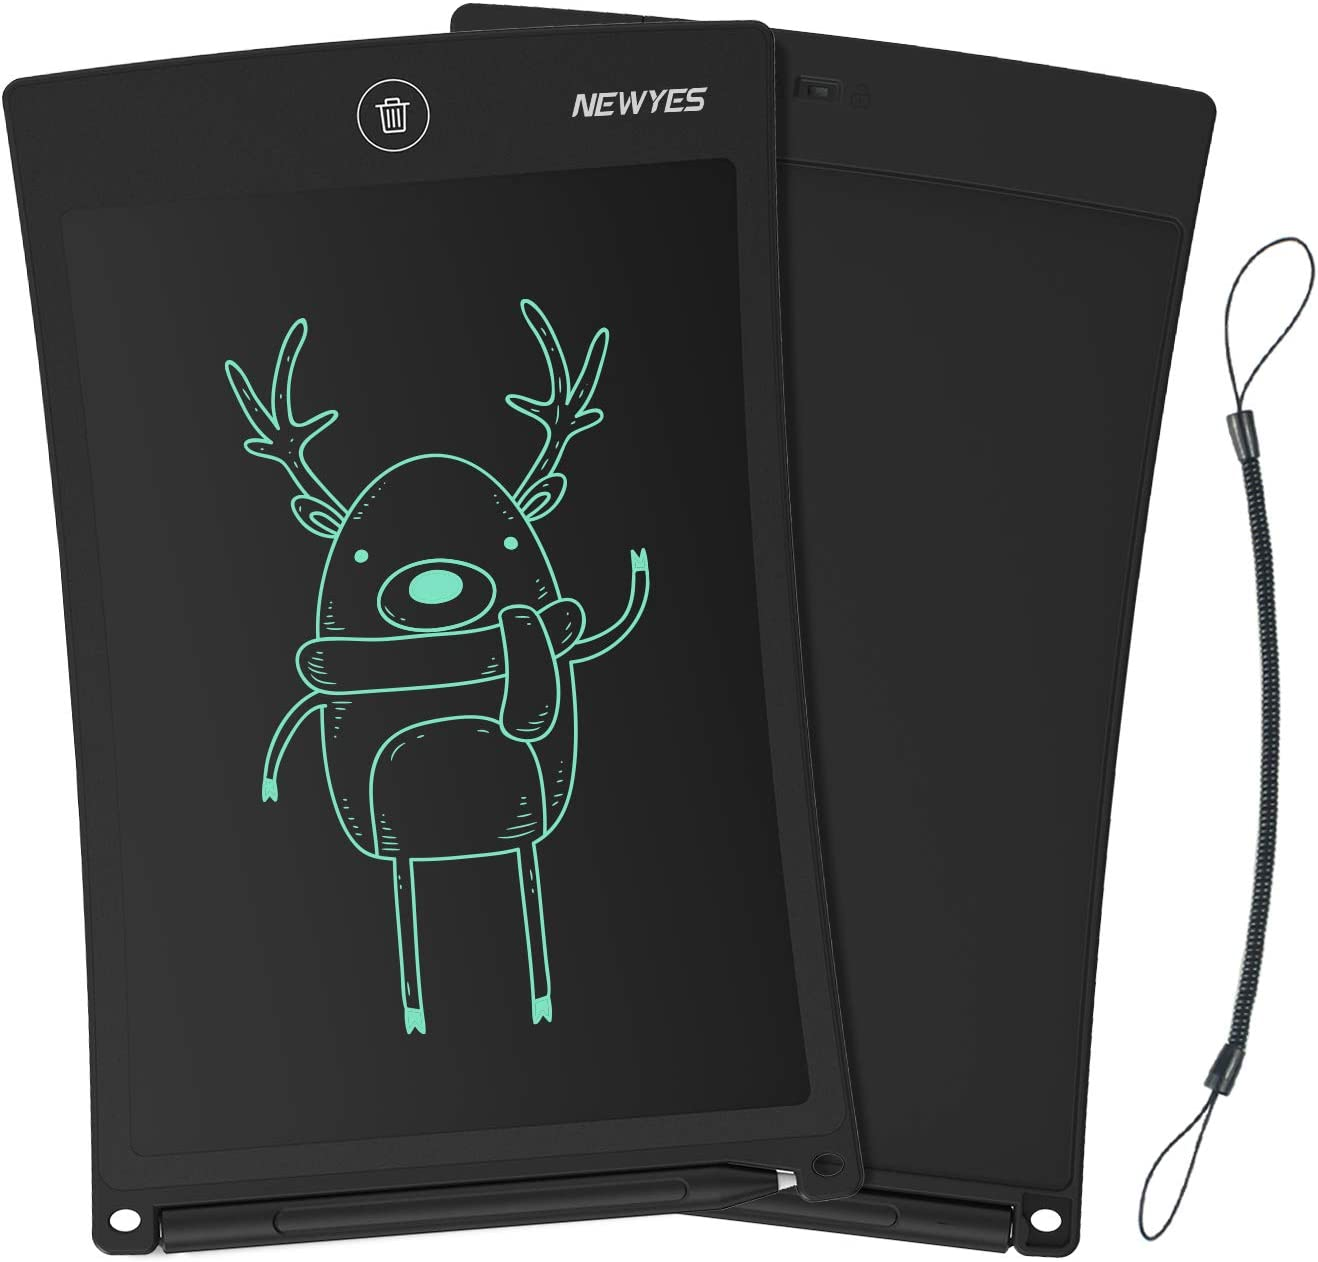 NEWYES Jot 8.5 Inch Doodle Pad Drawing Board LCD Writing Tablet with Lock Function for Note Taking eWriter Gifts for Kids Black